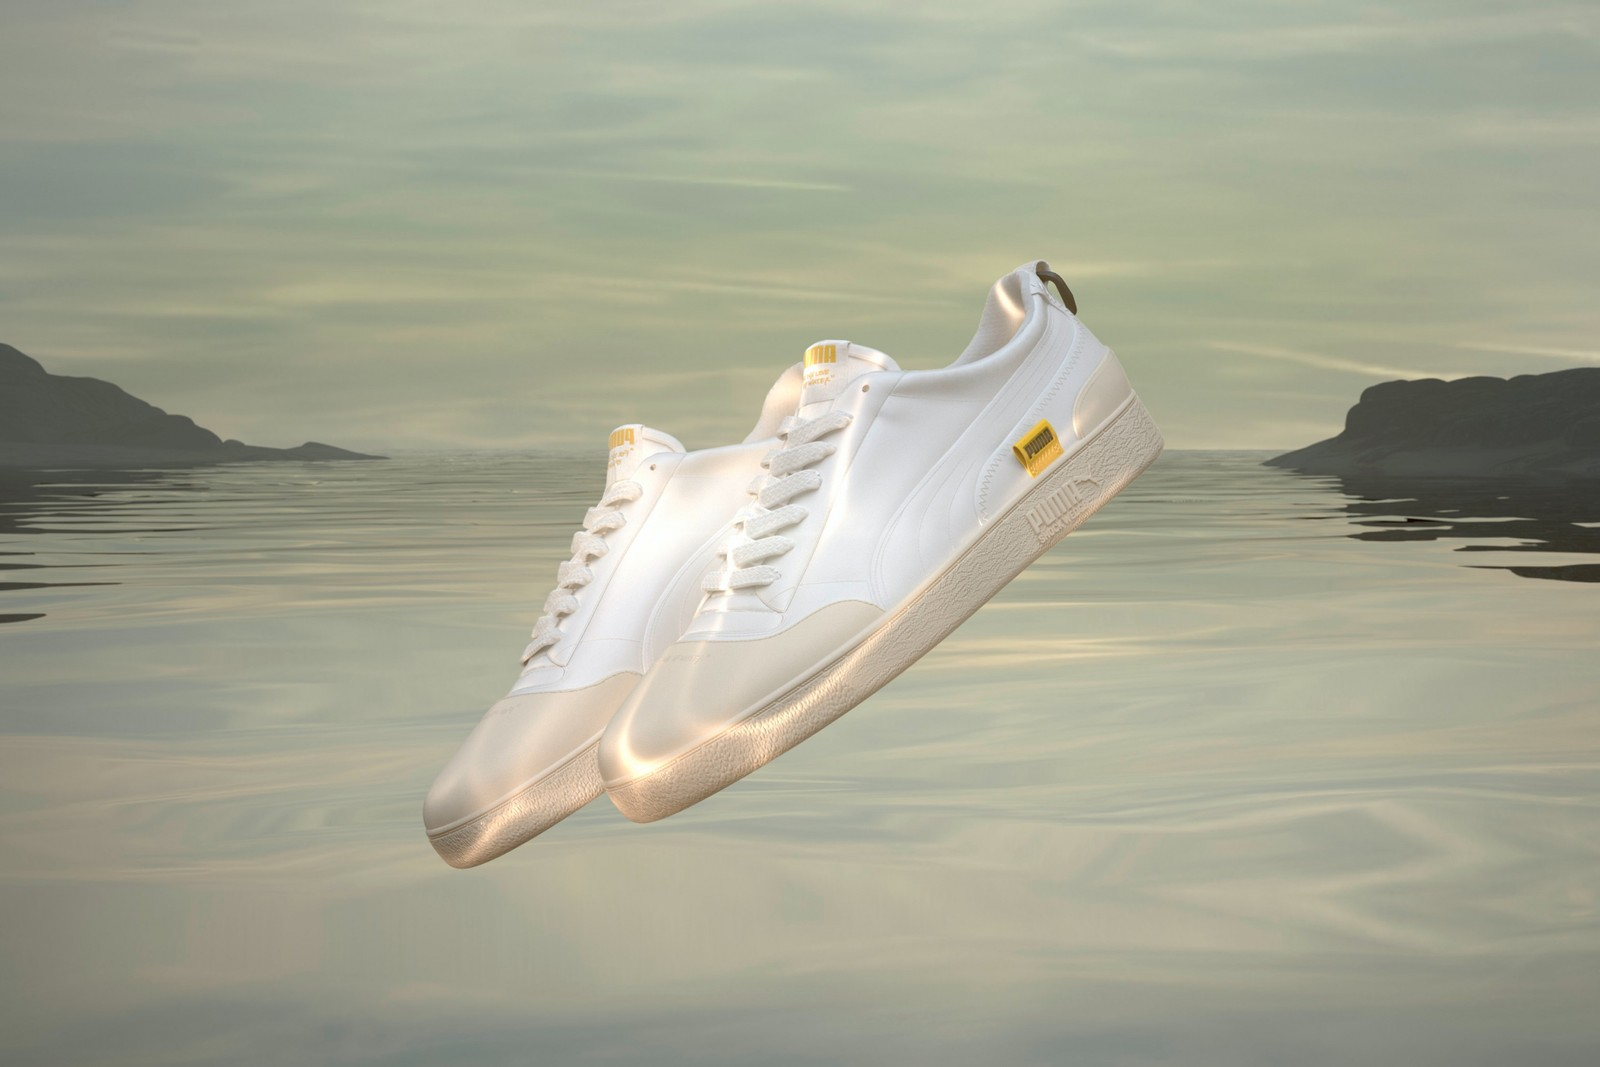 PUMA Central Saint Martins collaboration collection fashion apparel footwear sustainability LOVE water manufacturing techniques